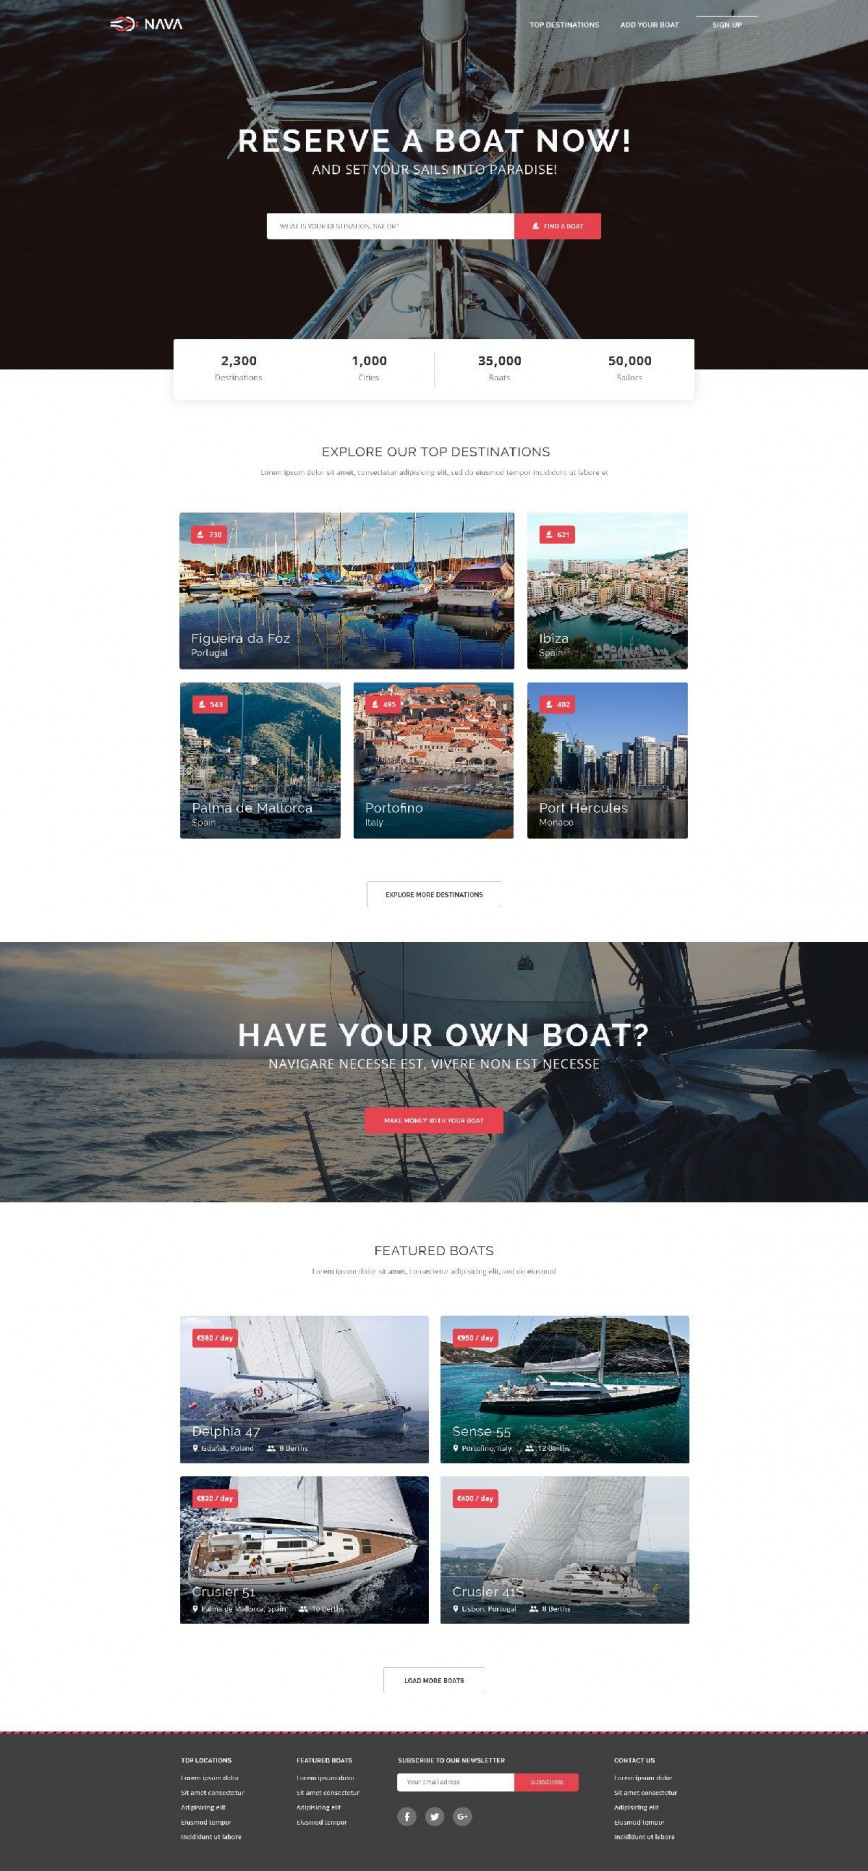 006 Remarkable One Page Website Template Psd Free Download Idea 868